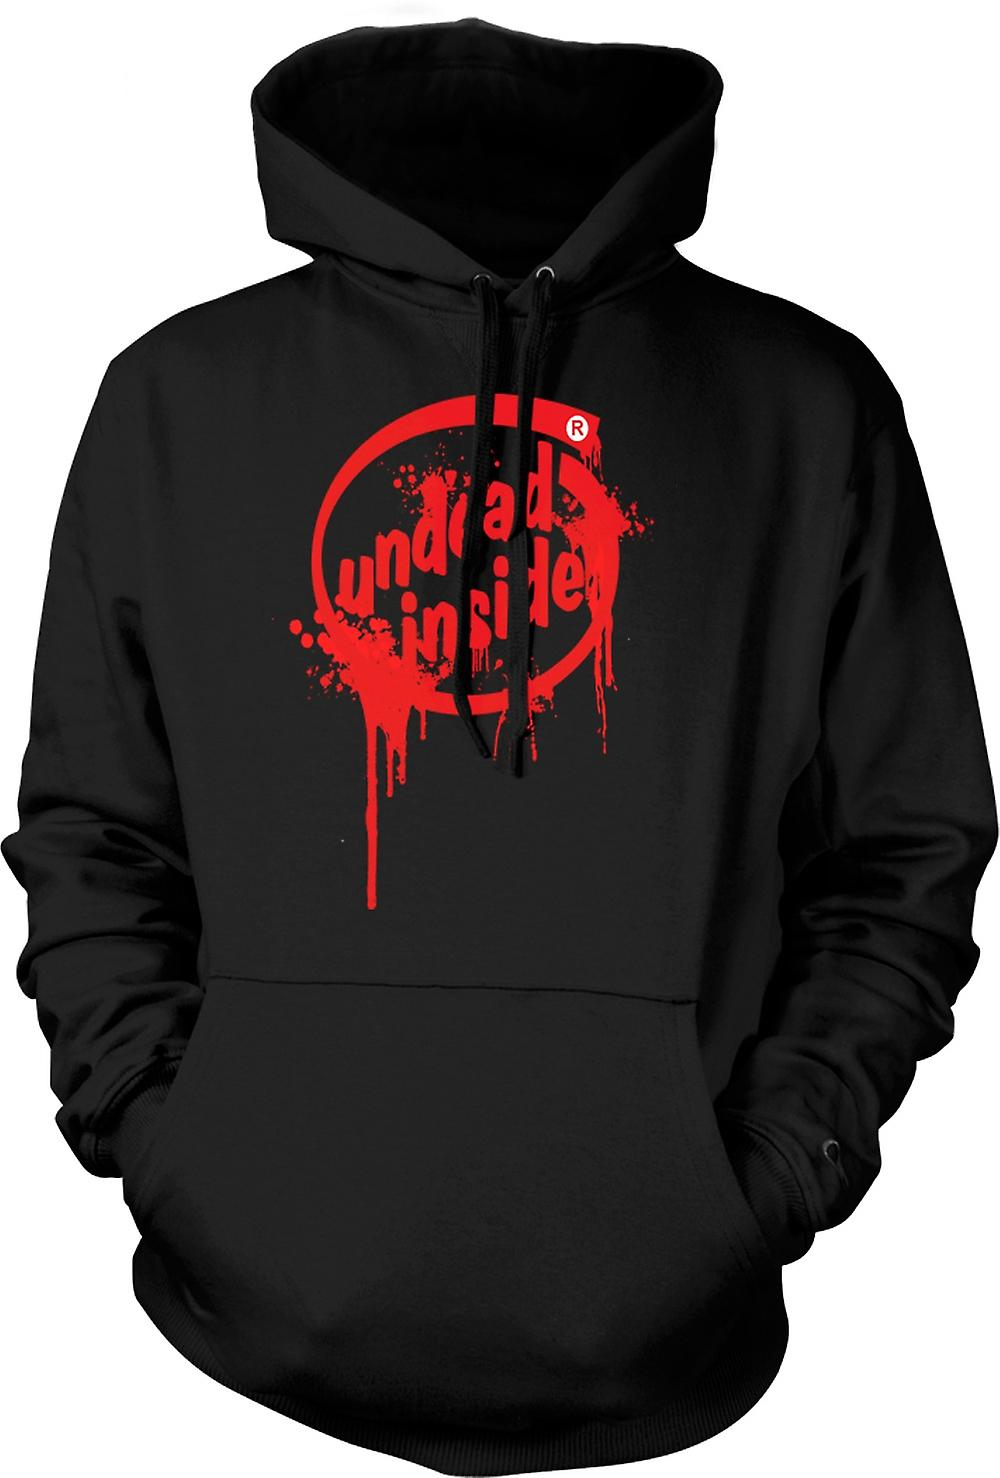 Mens Hoodie - non morti all'interno - Zombie - Funny